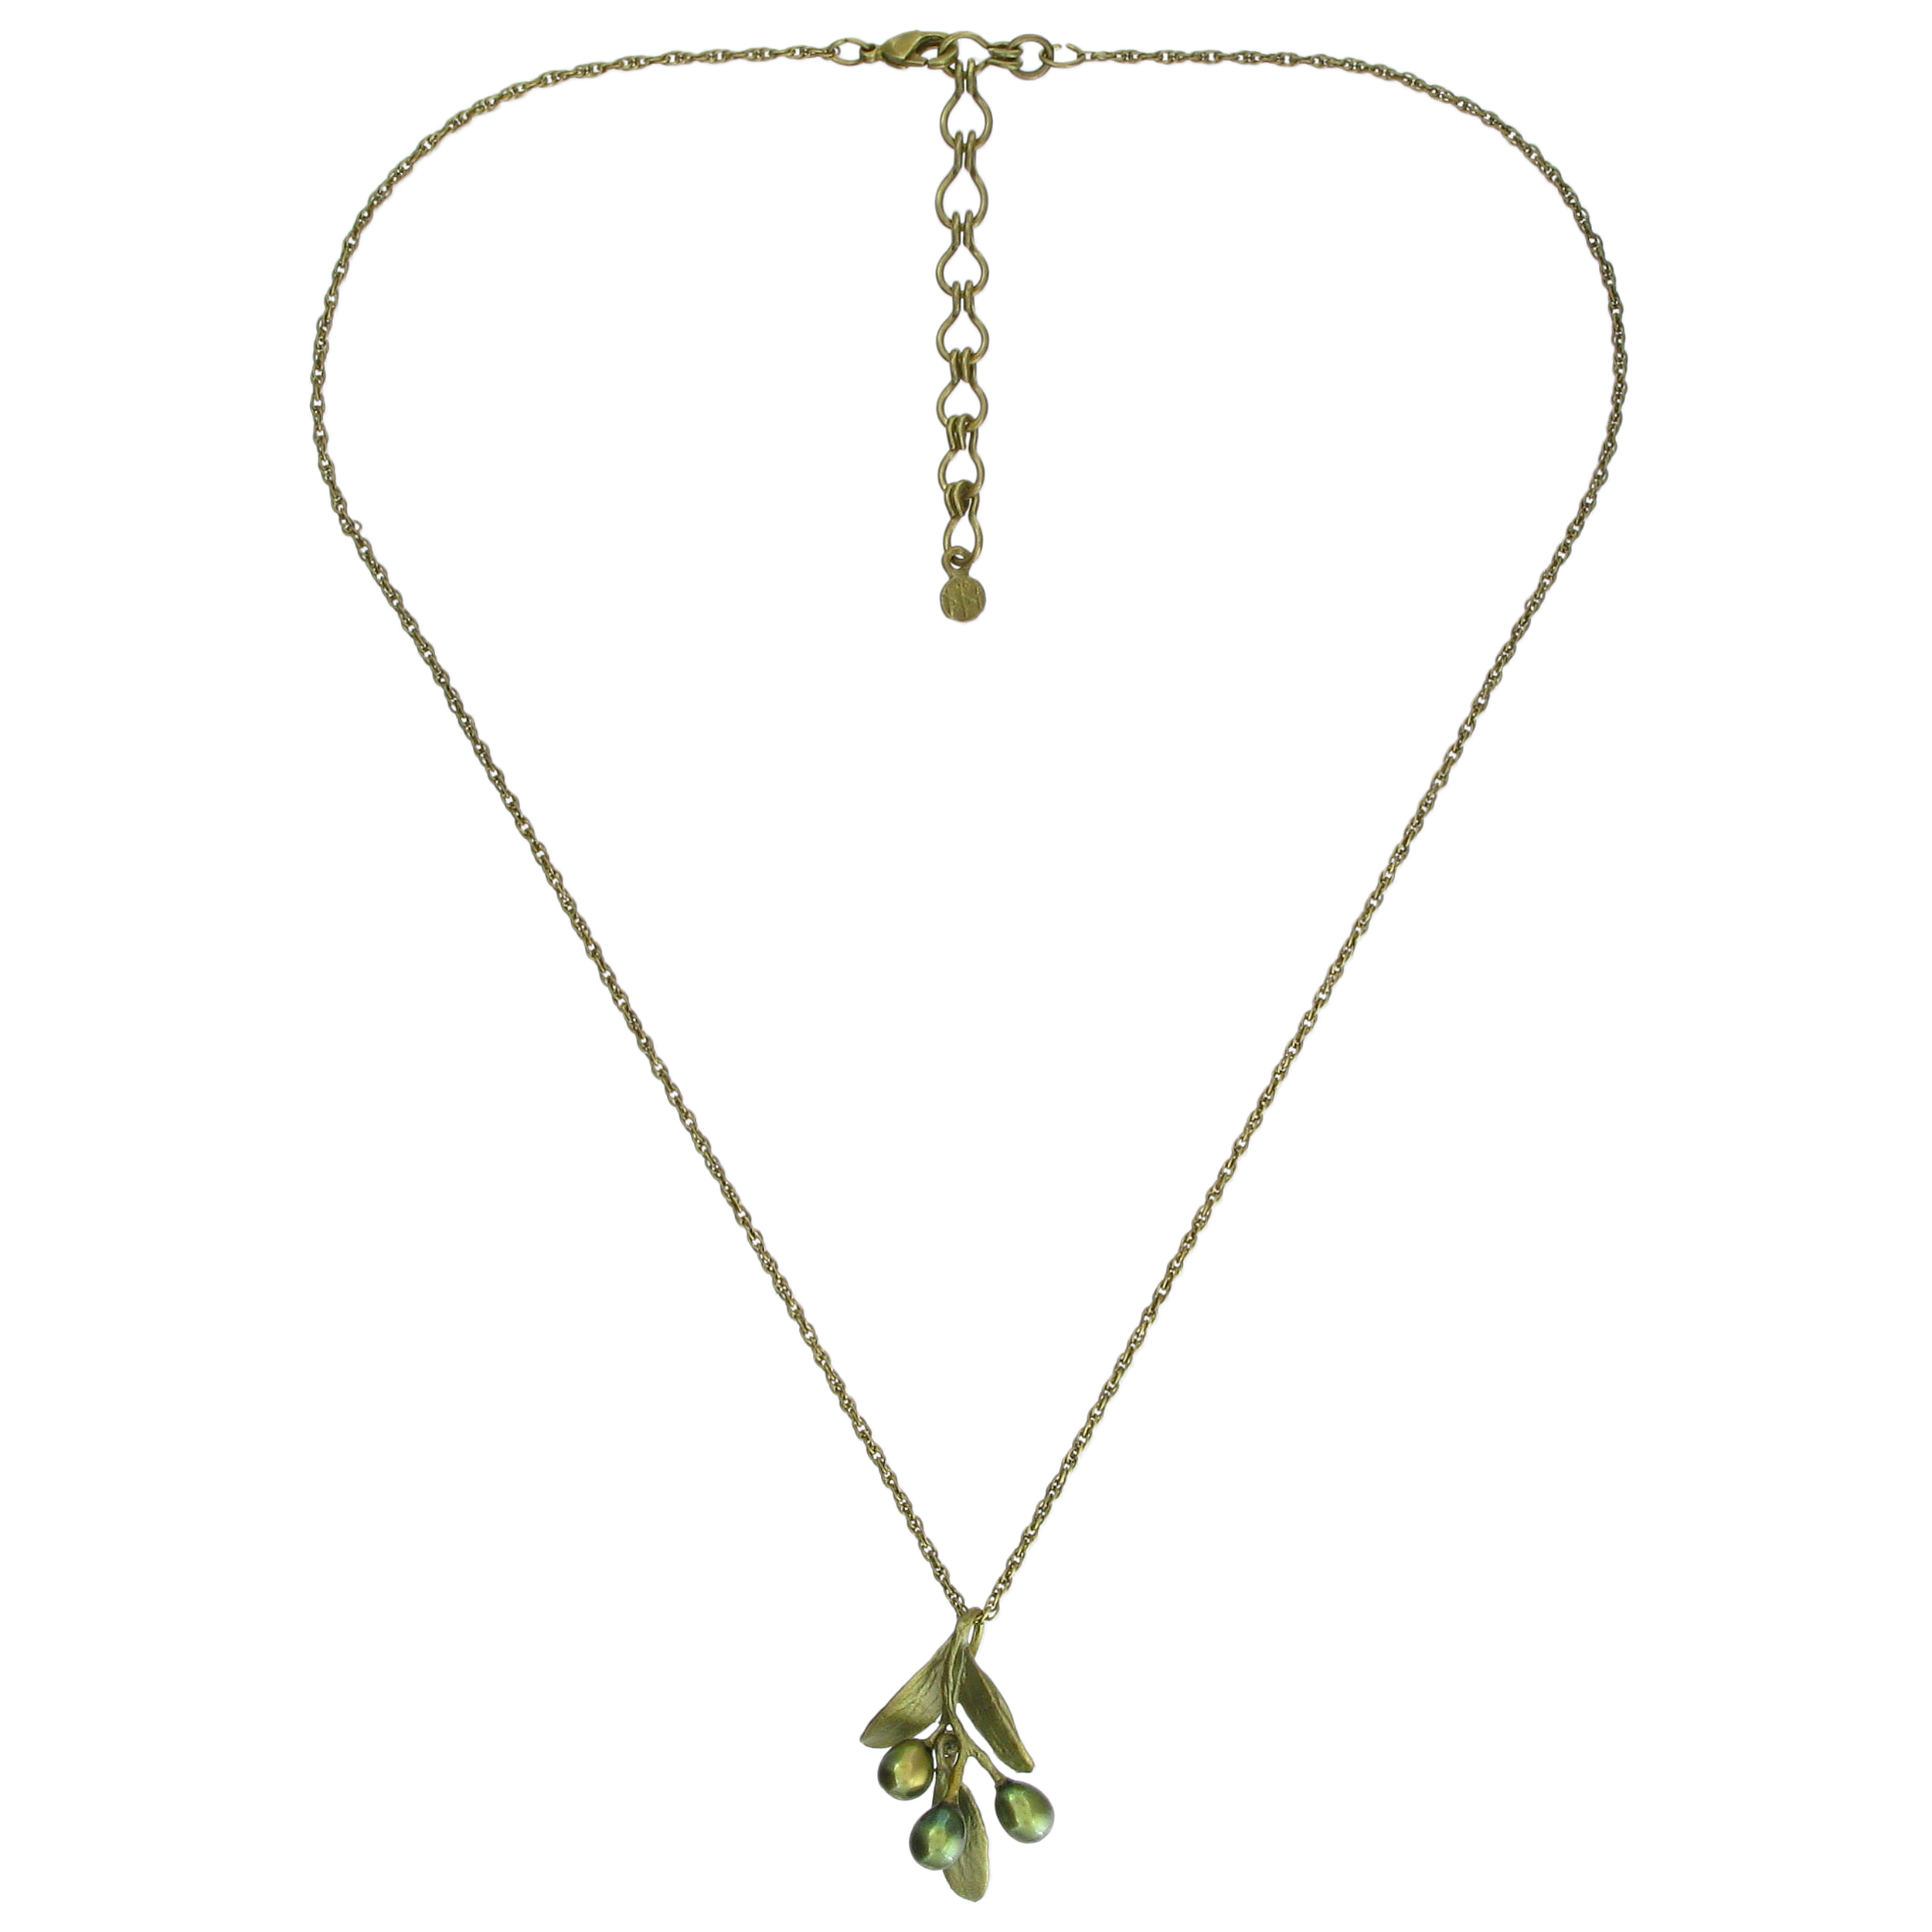 Olive pearl pendant necklace